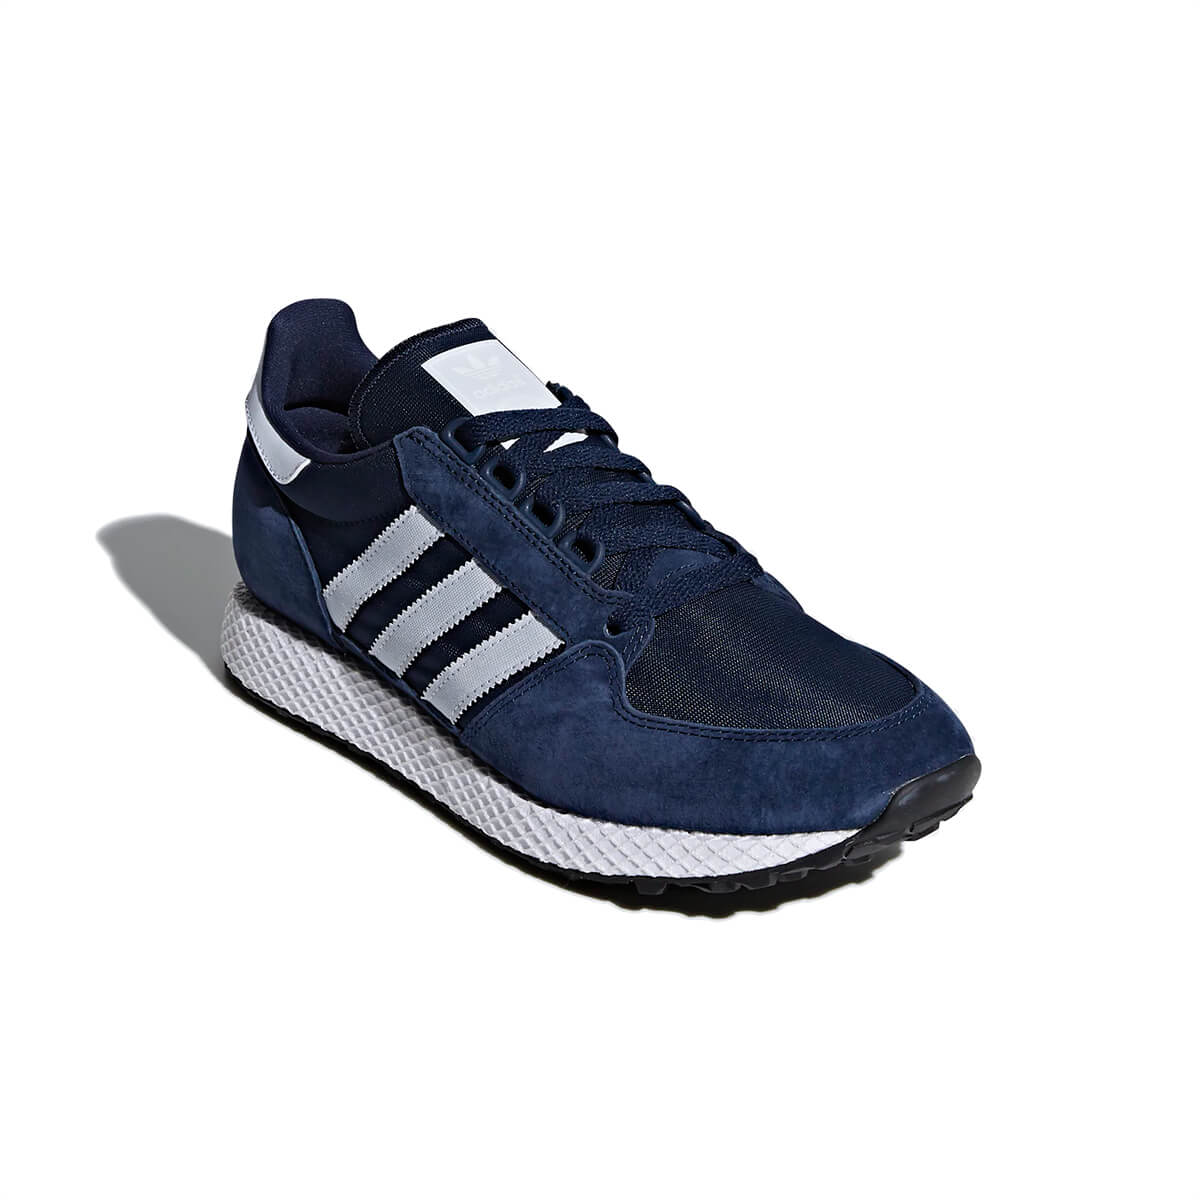 New Adidas Originals Forest Grove Men Navy Blue White Fashion Shoes Trainers NIB